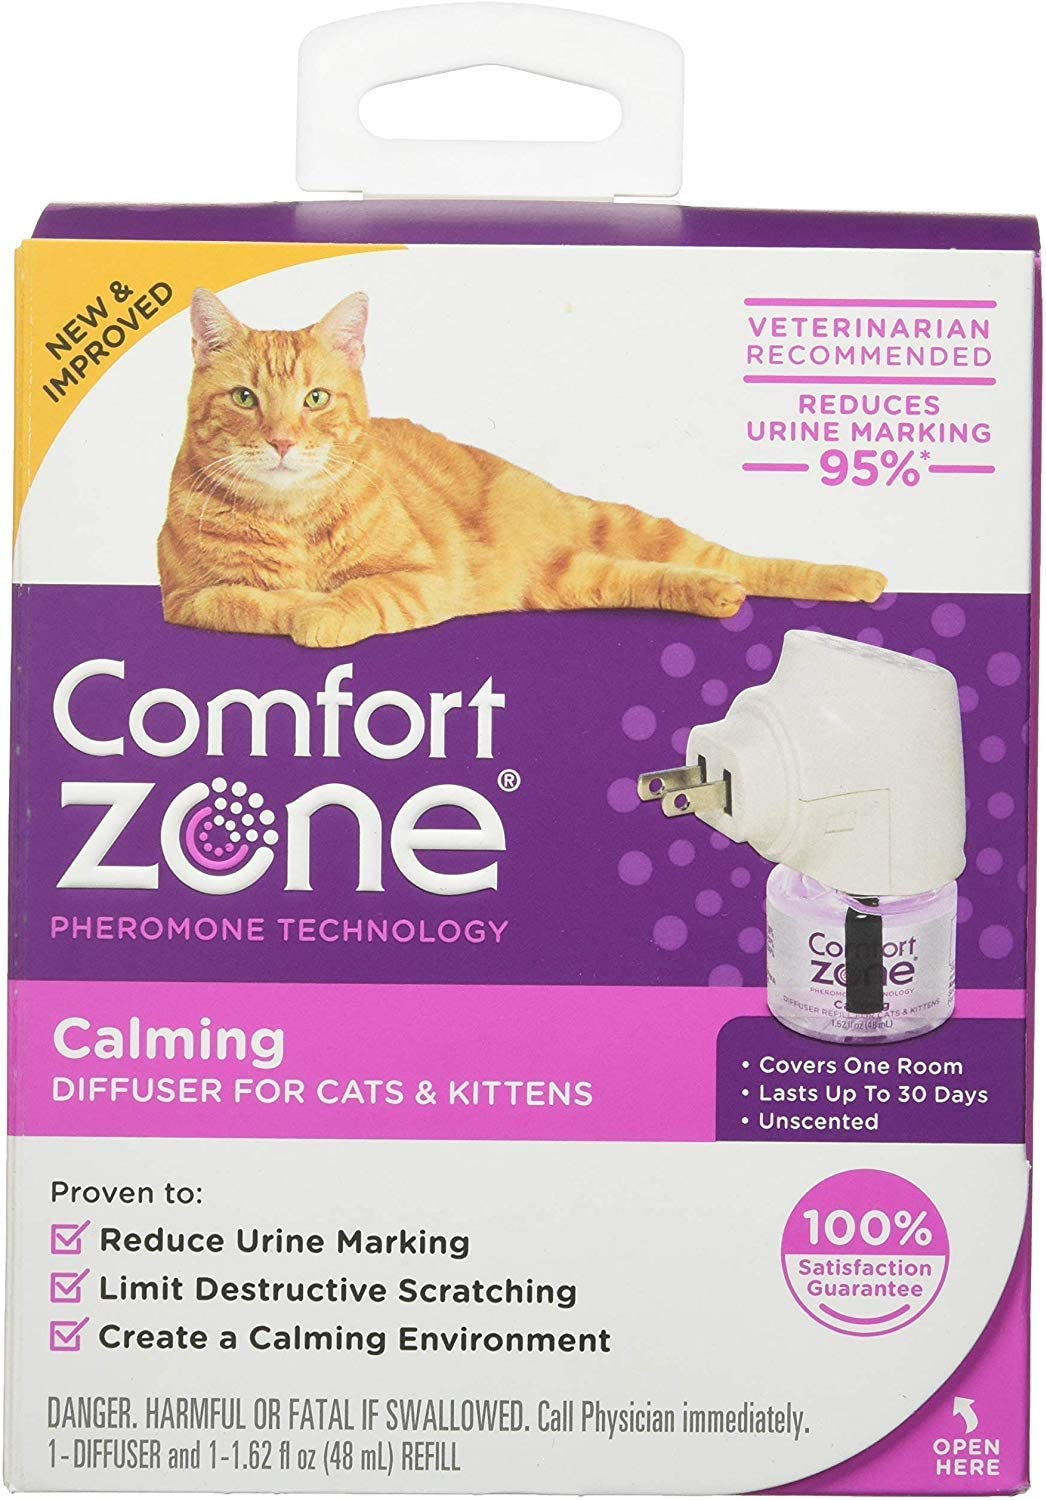 Comfort Zone Pheromone Cat Calming Diffuser 1 Count - (1 Diffuser & 1 Refill) - Pack of 2